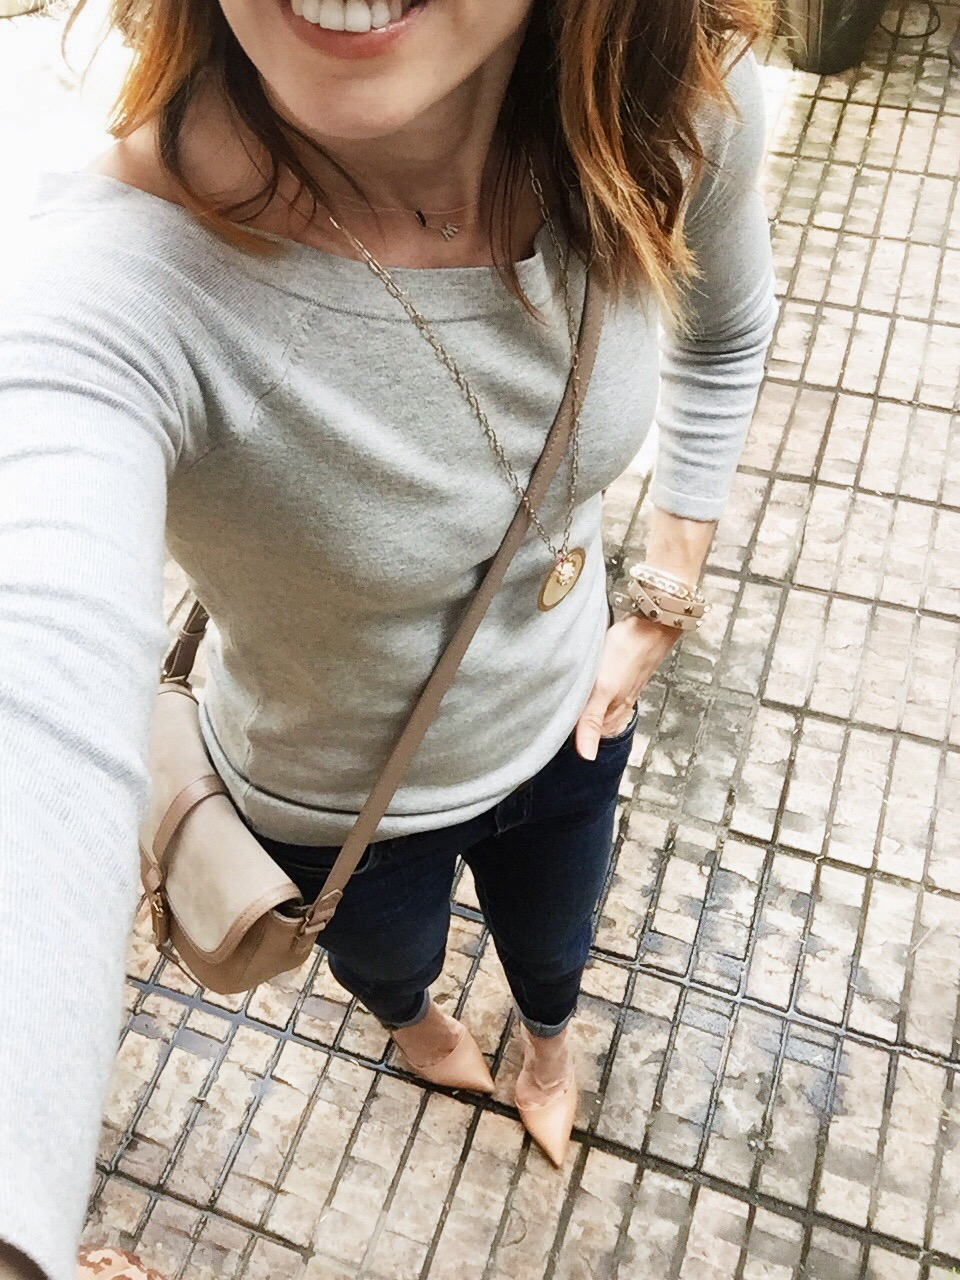 boatneck, grey, sweater, neutrals, wear it, style, everyday style, method39, wardrobe consultant